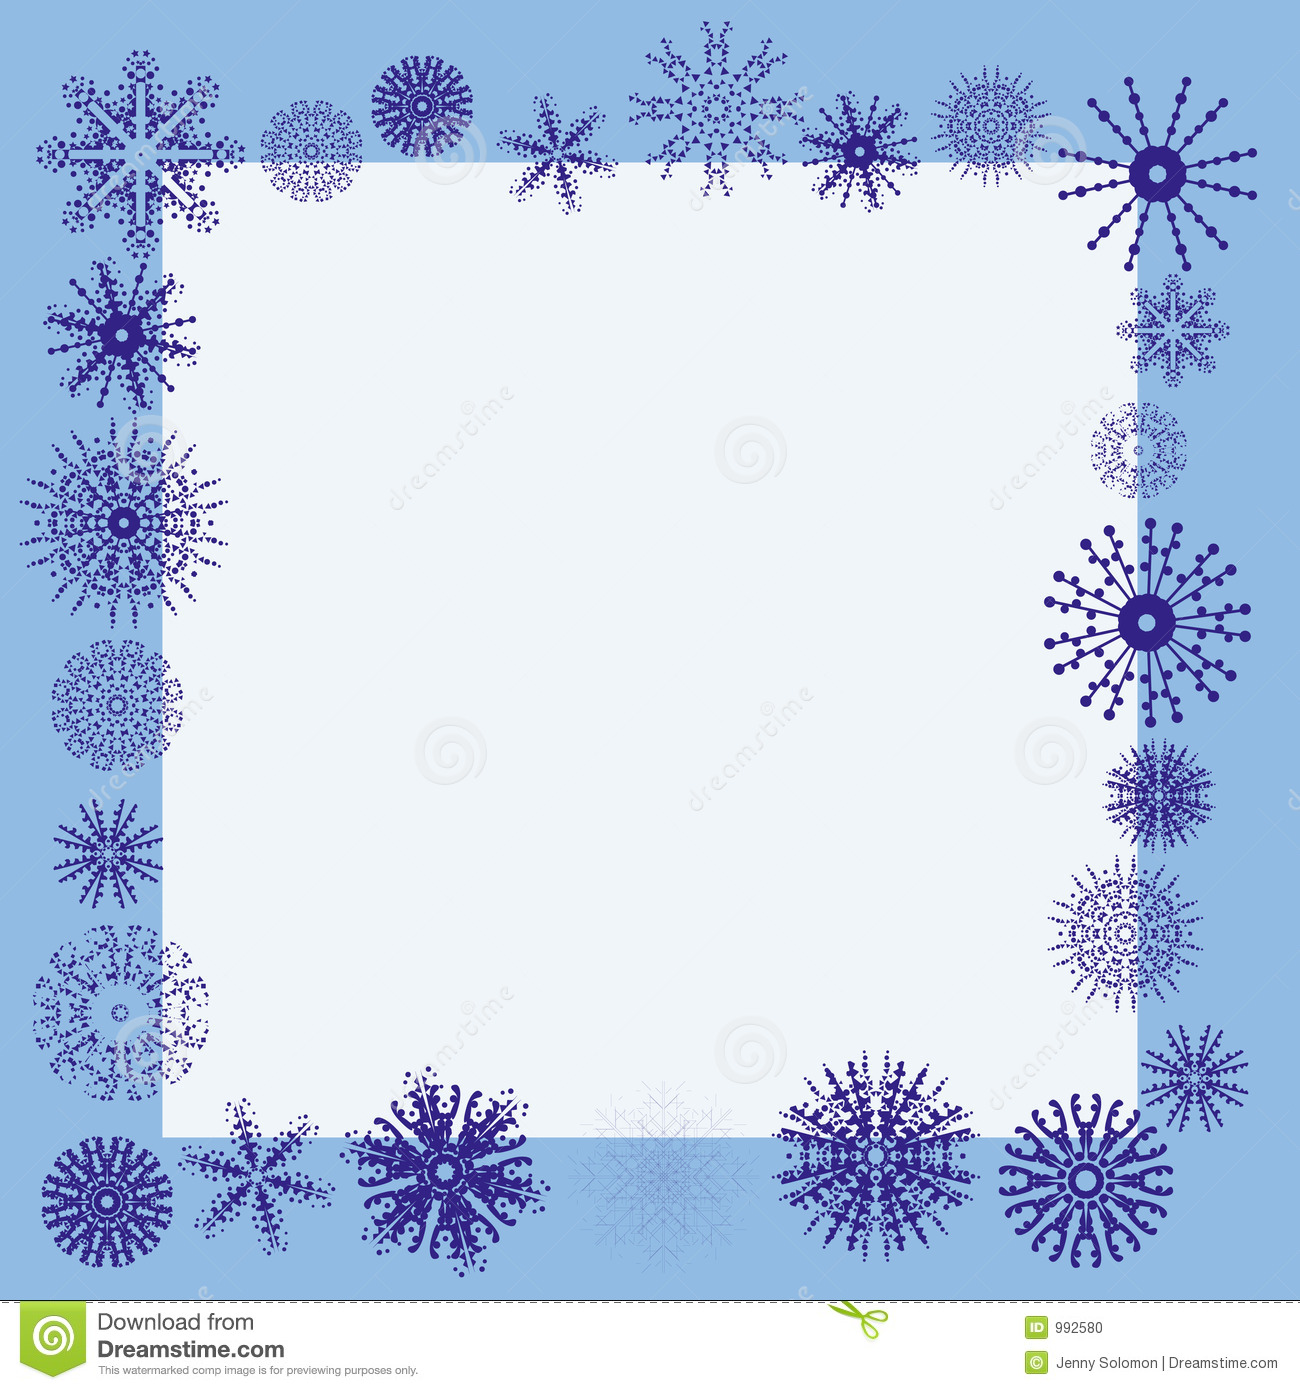 Winter Border Winter border with detailed